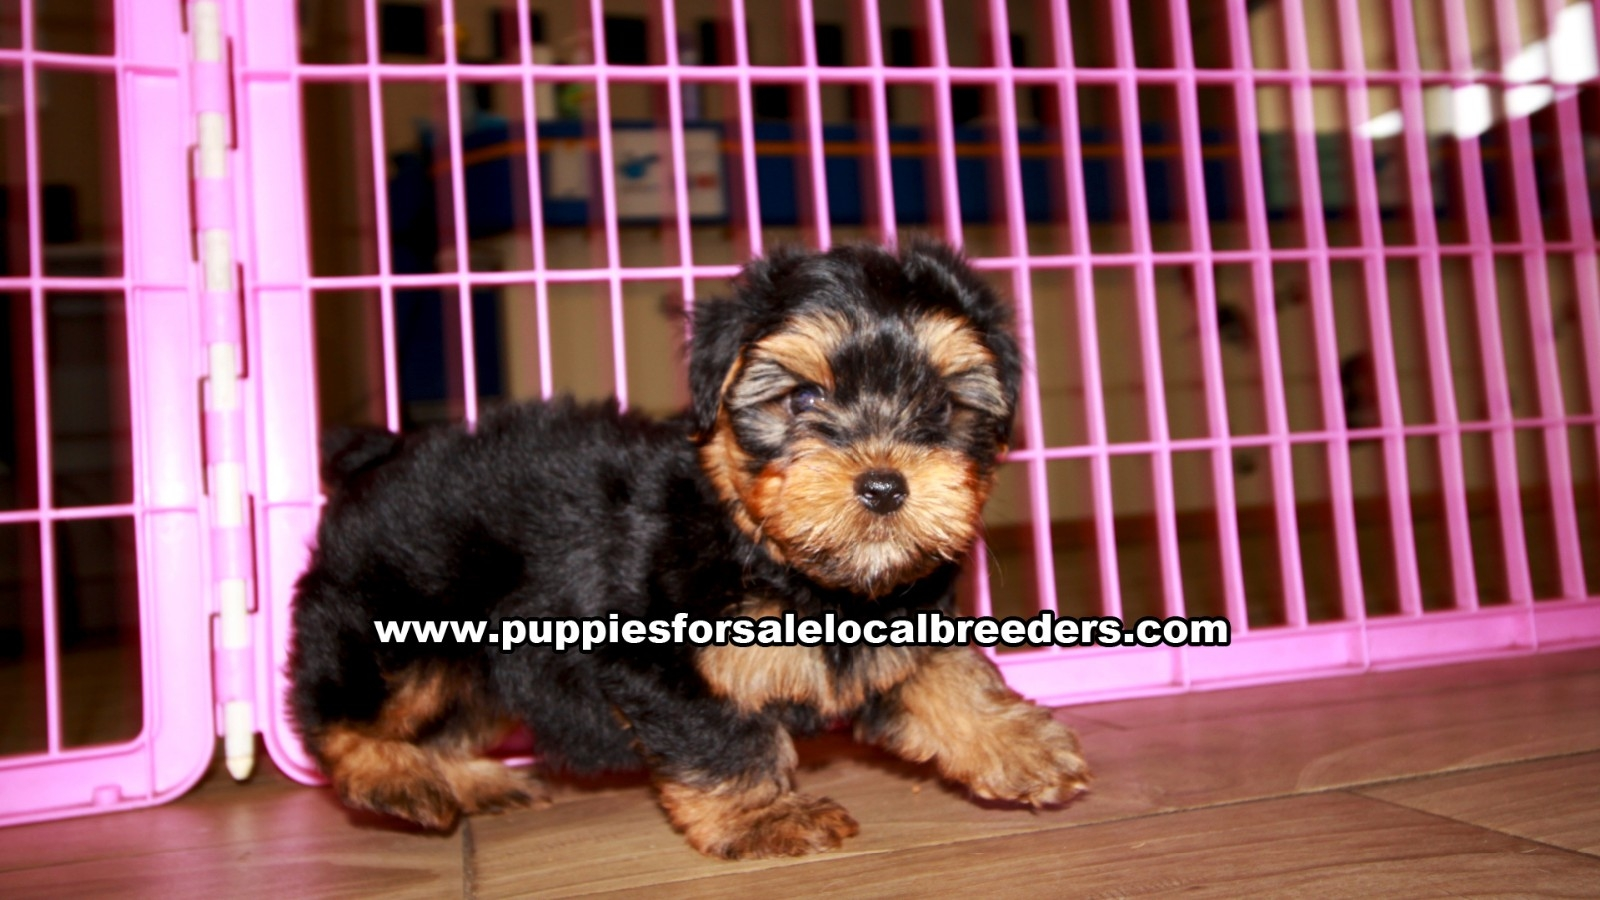 Yorkie Poo, Puppies For Sale In Georgia, Local Breeders, Near Atlanta, Ga